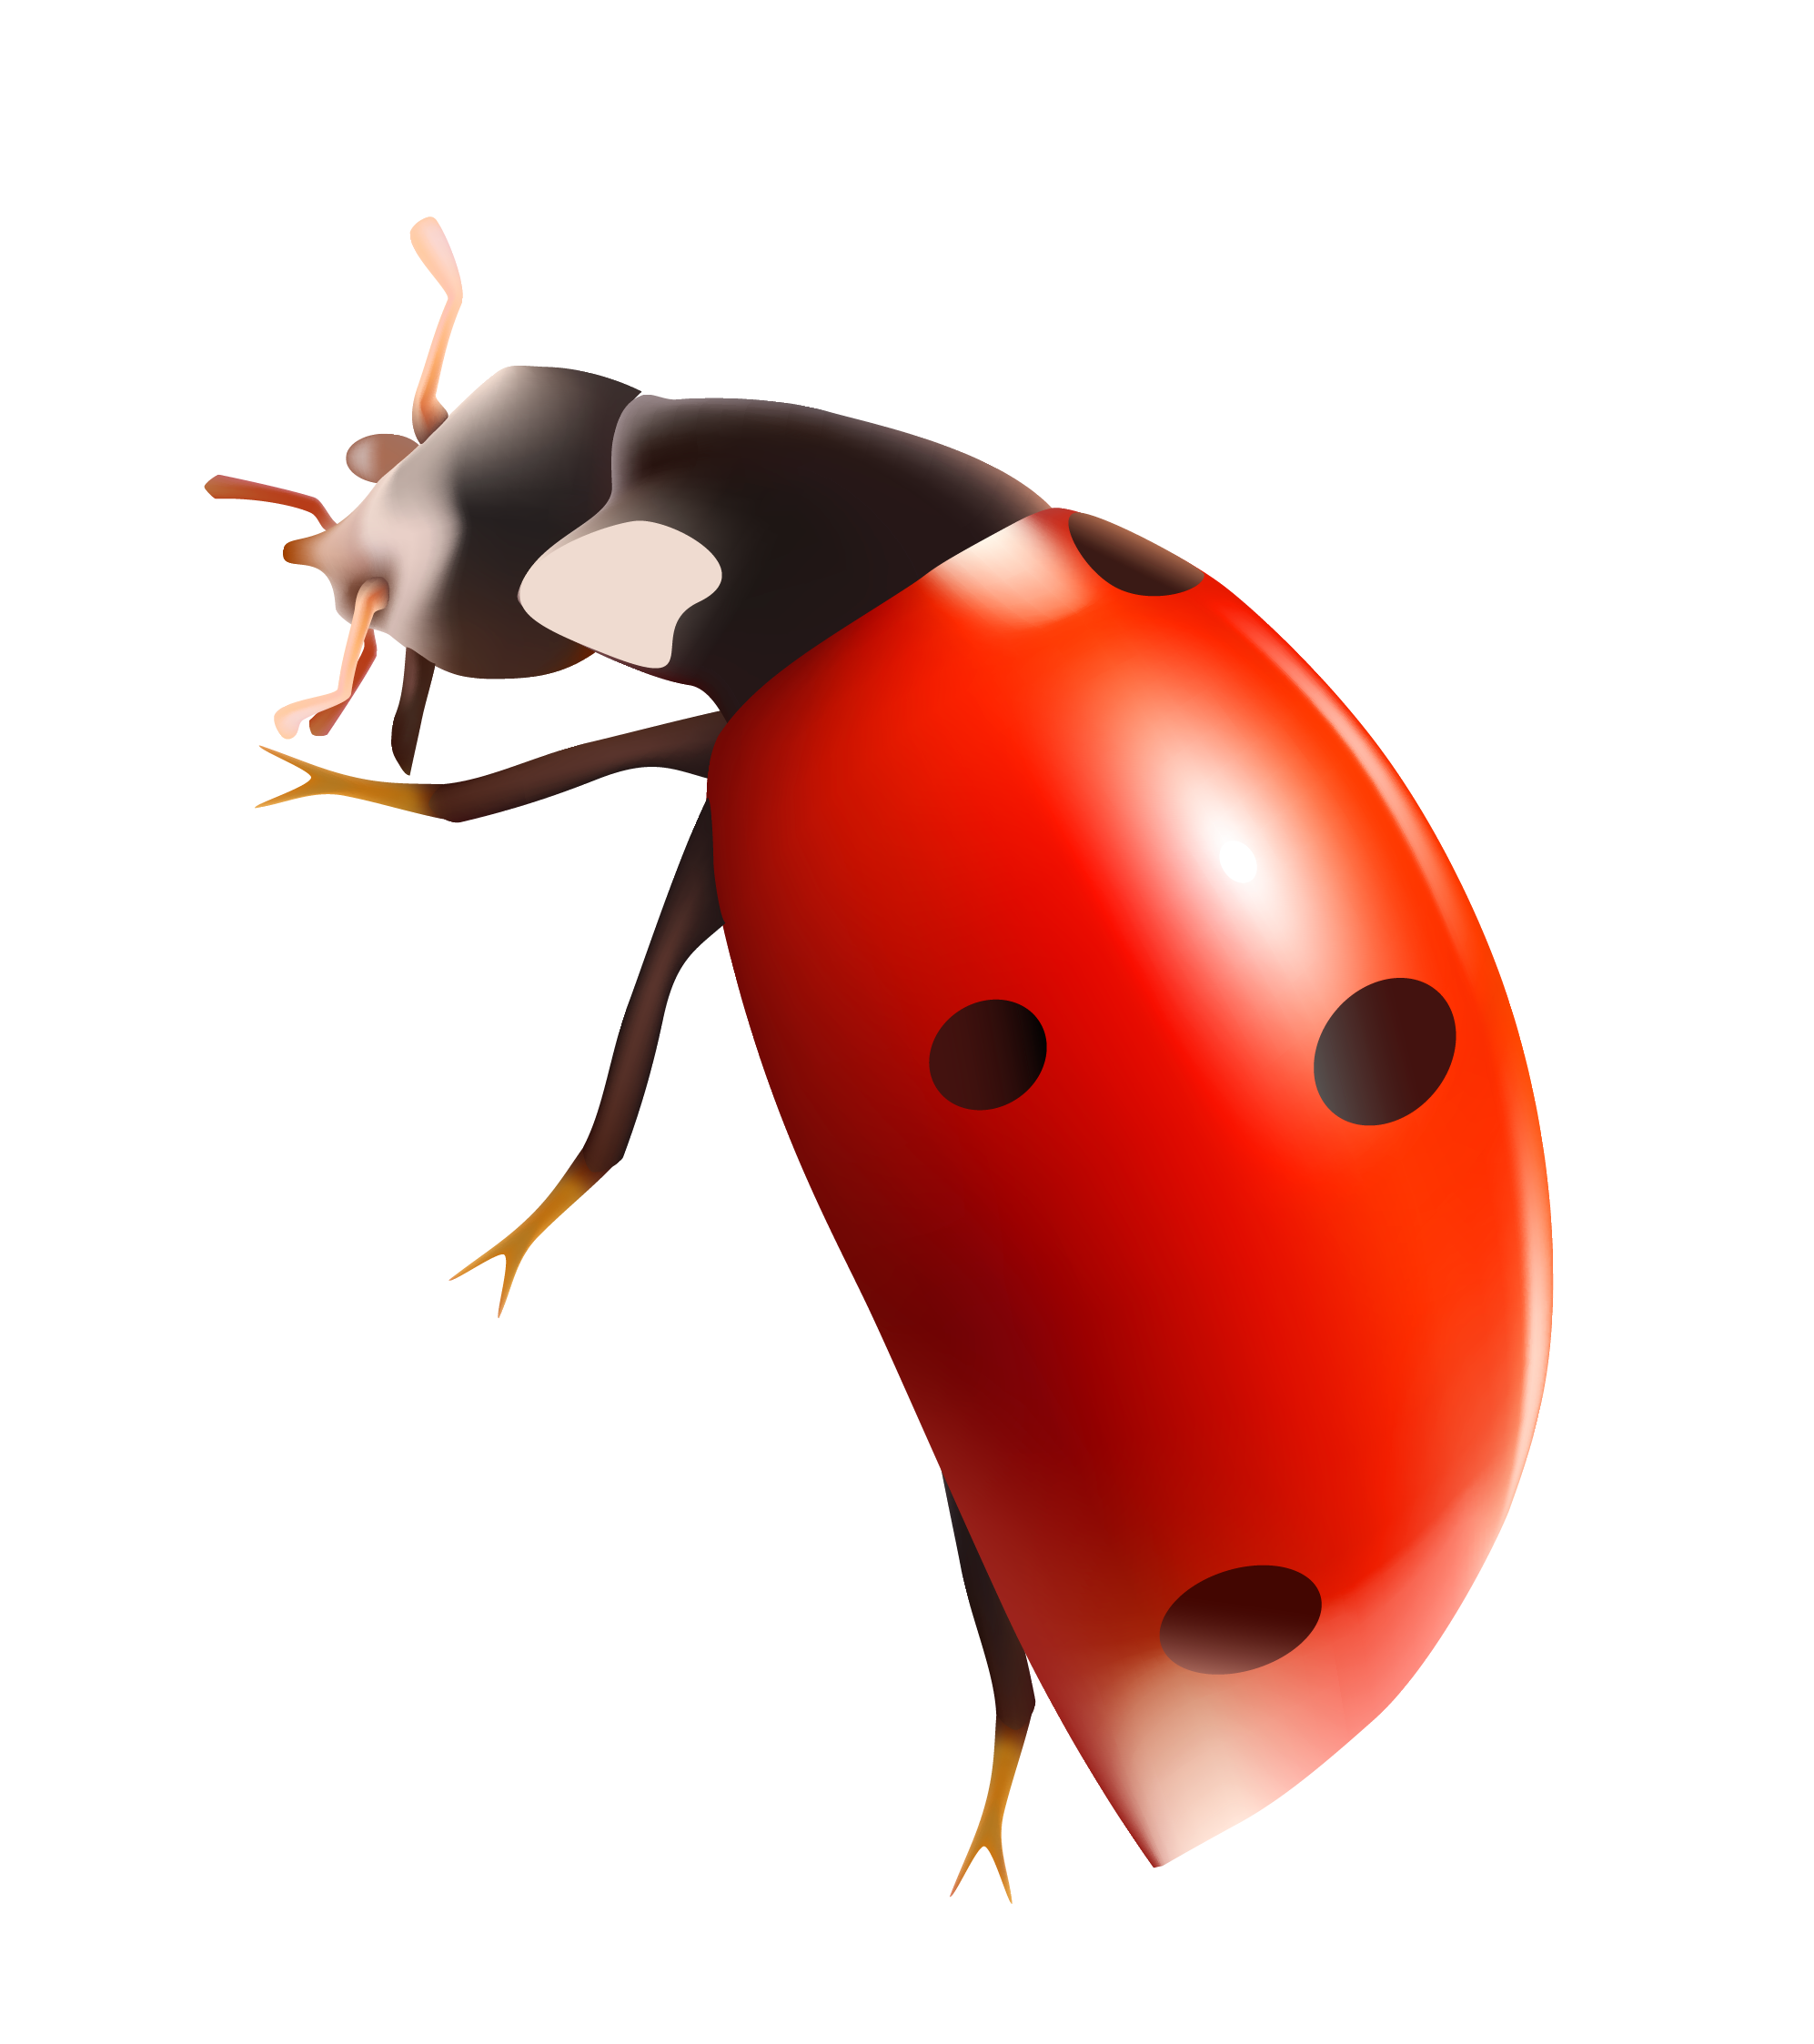 Free Ladybug Transparent Background, Download Free Clip Art.